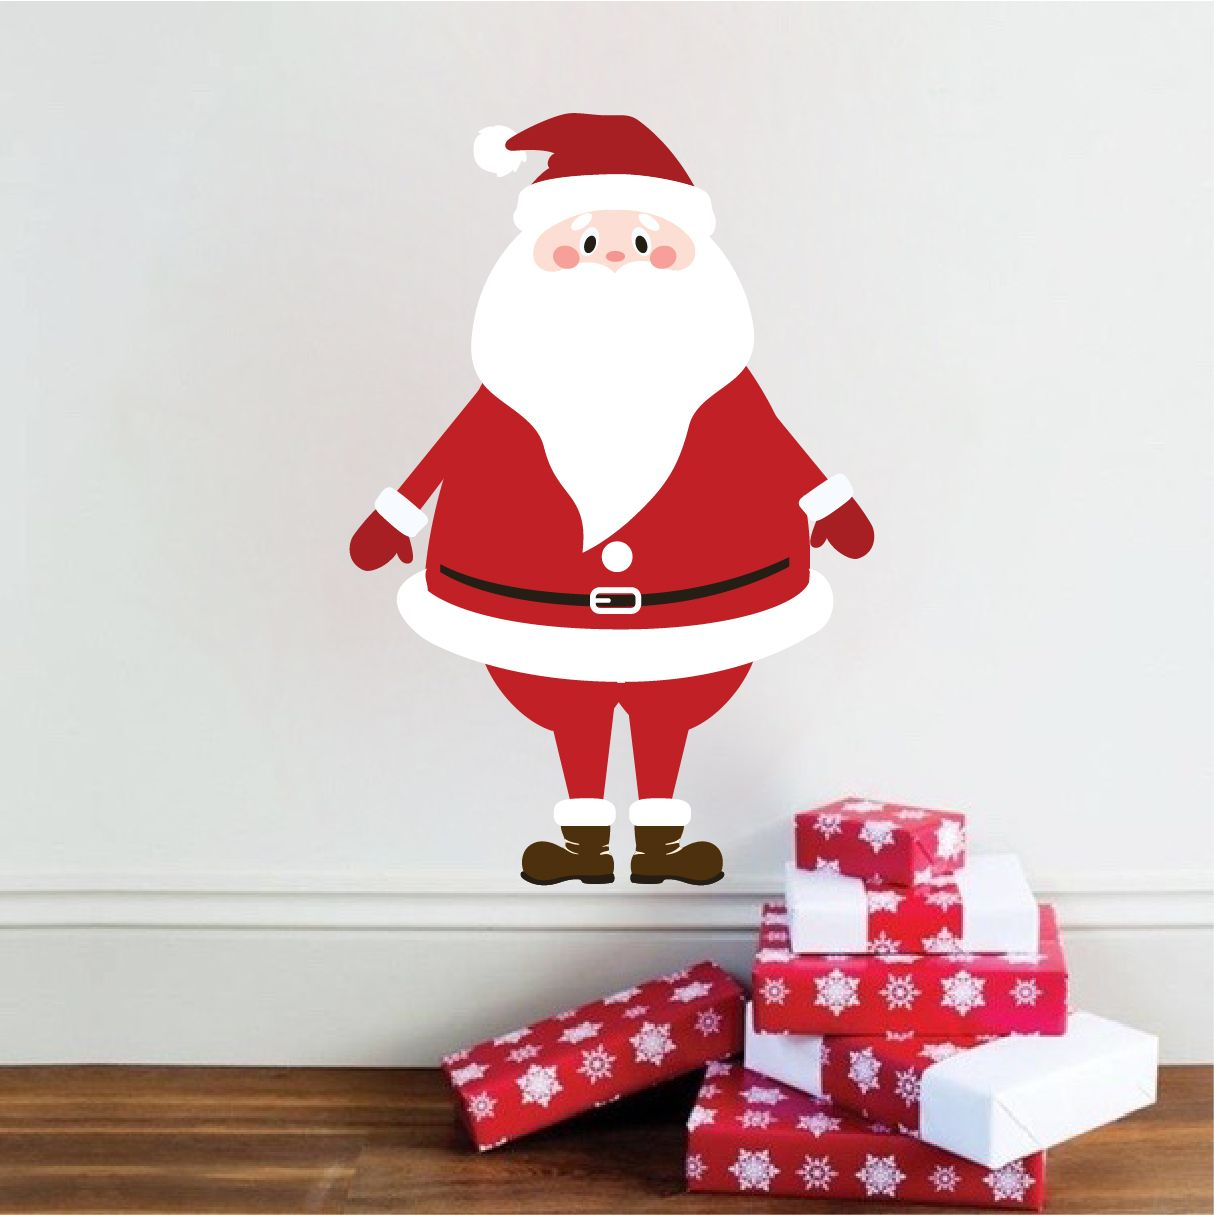 Christmas Santa Wall Decal Mural Christmas Santa Wall Design - Christmas wall decals removable